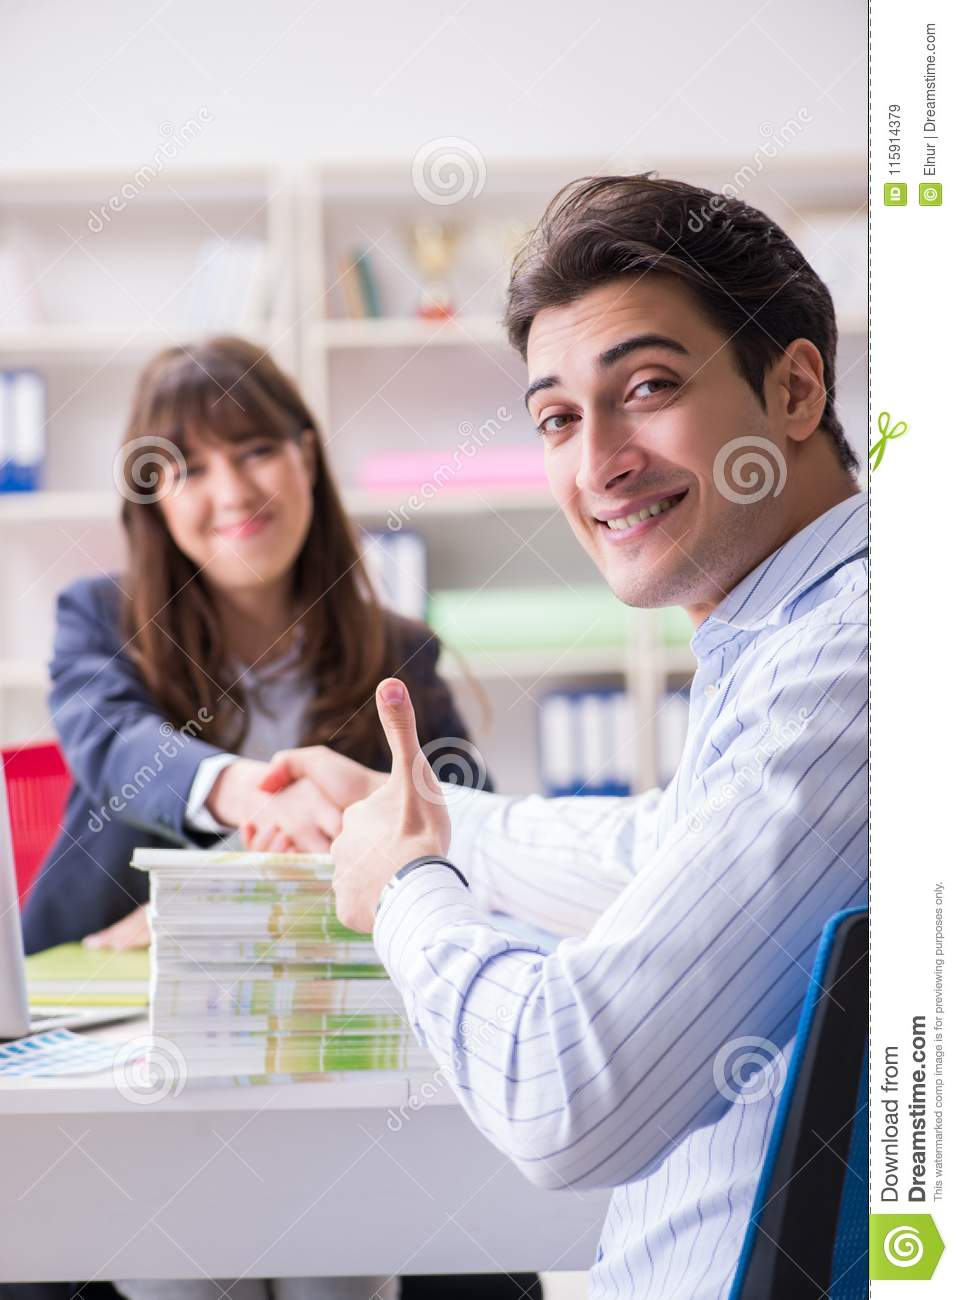 Pulisher Discussing Book Order With Customer Stock Image